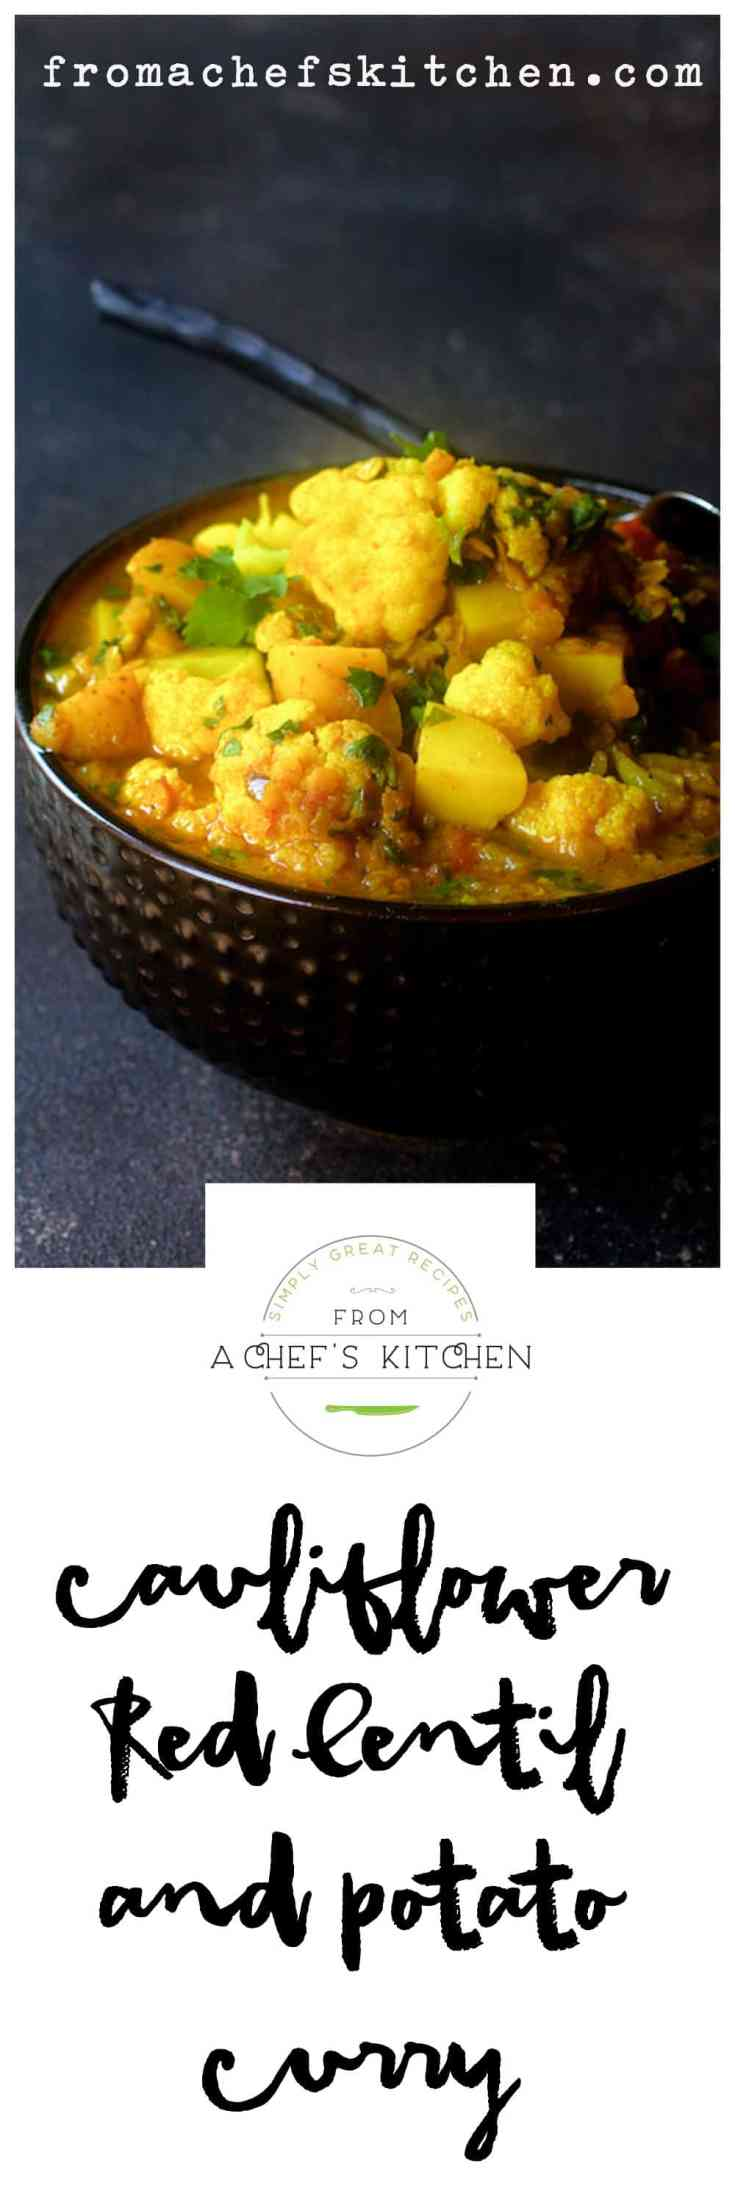 Cauliflower, Red Lentil and Potato Curry is spicy, hearty and delicious! Red lentils cook quickly and it's super easy to vary the veggies in the Indian-inspired dish! #curry #vegetablecurry #indianfood #indianvegetarian #indianveganfood